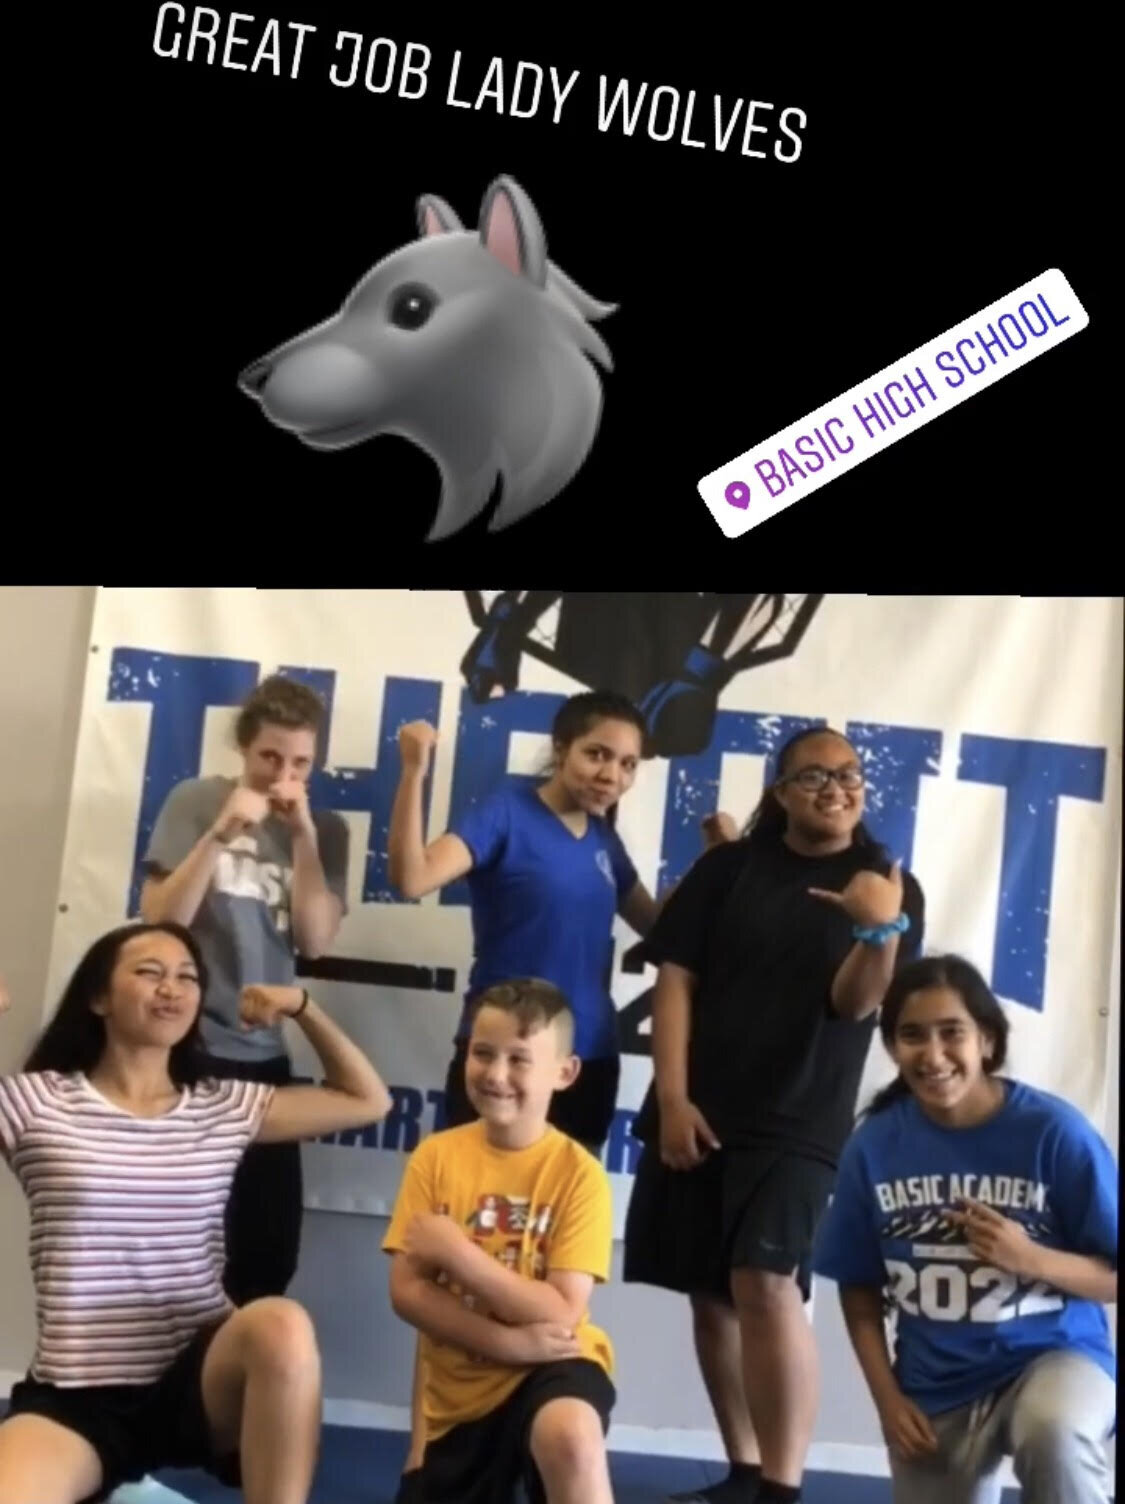 Teaching realistic self defense is our priority but our main concern is safety. Students will practice their techniques in a controlled, safe, environment. This allows everyone to learn and have fun in the process!